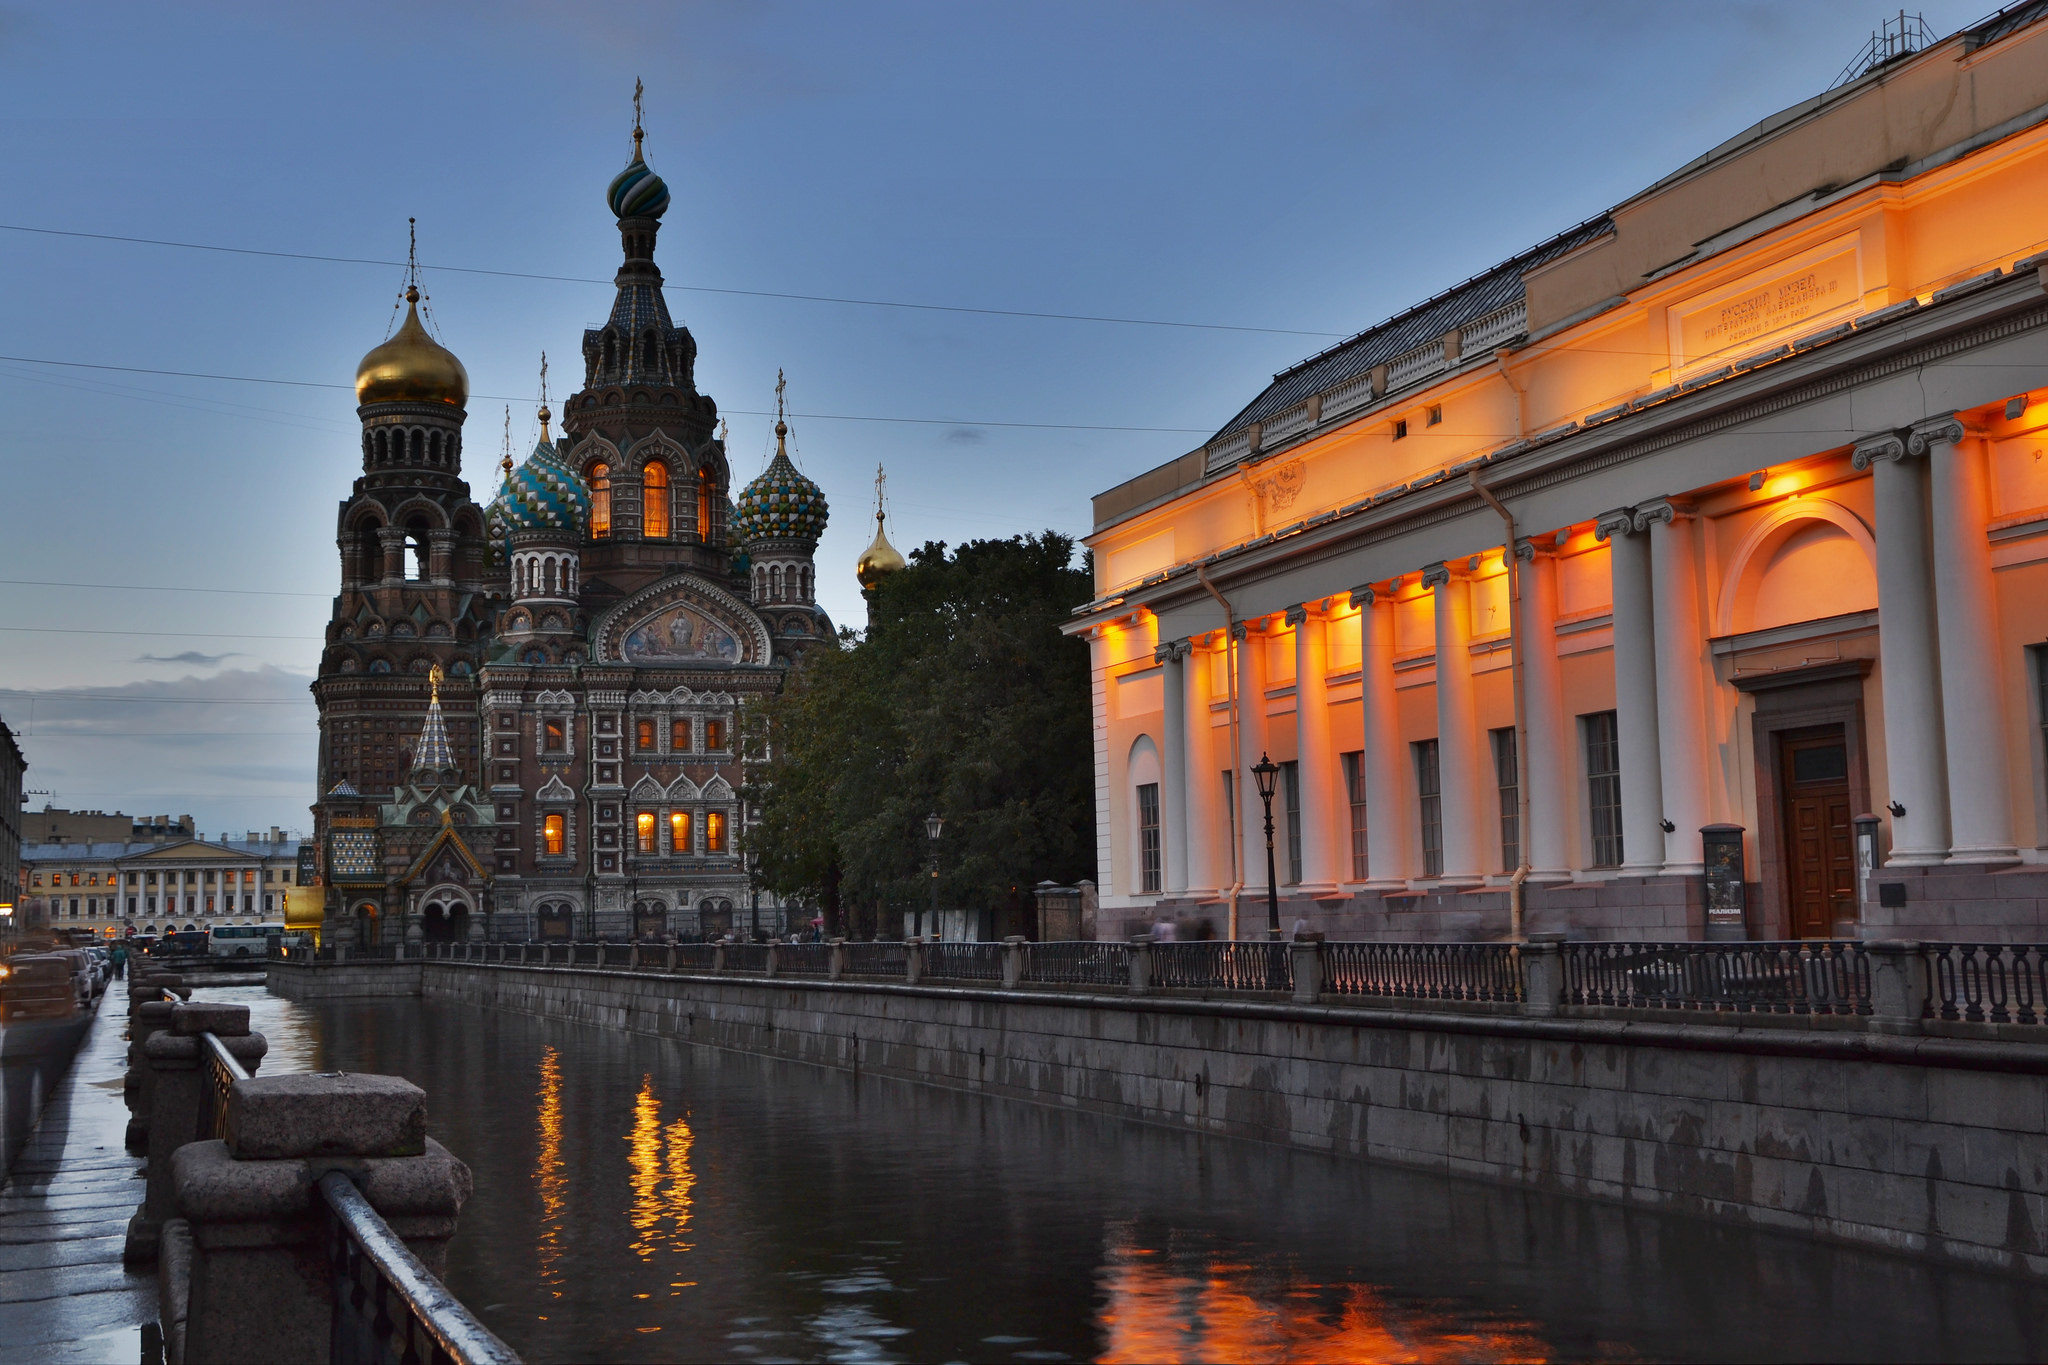 Where to Travel Based on Your Zodiac: Scorpio - St. Petersburg